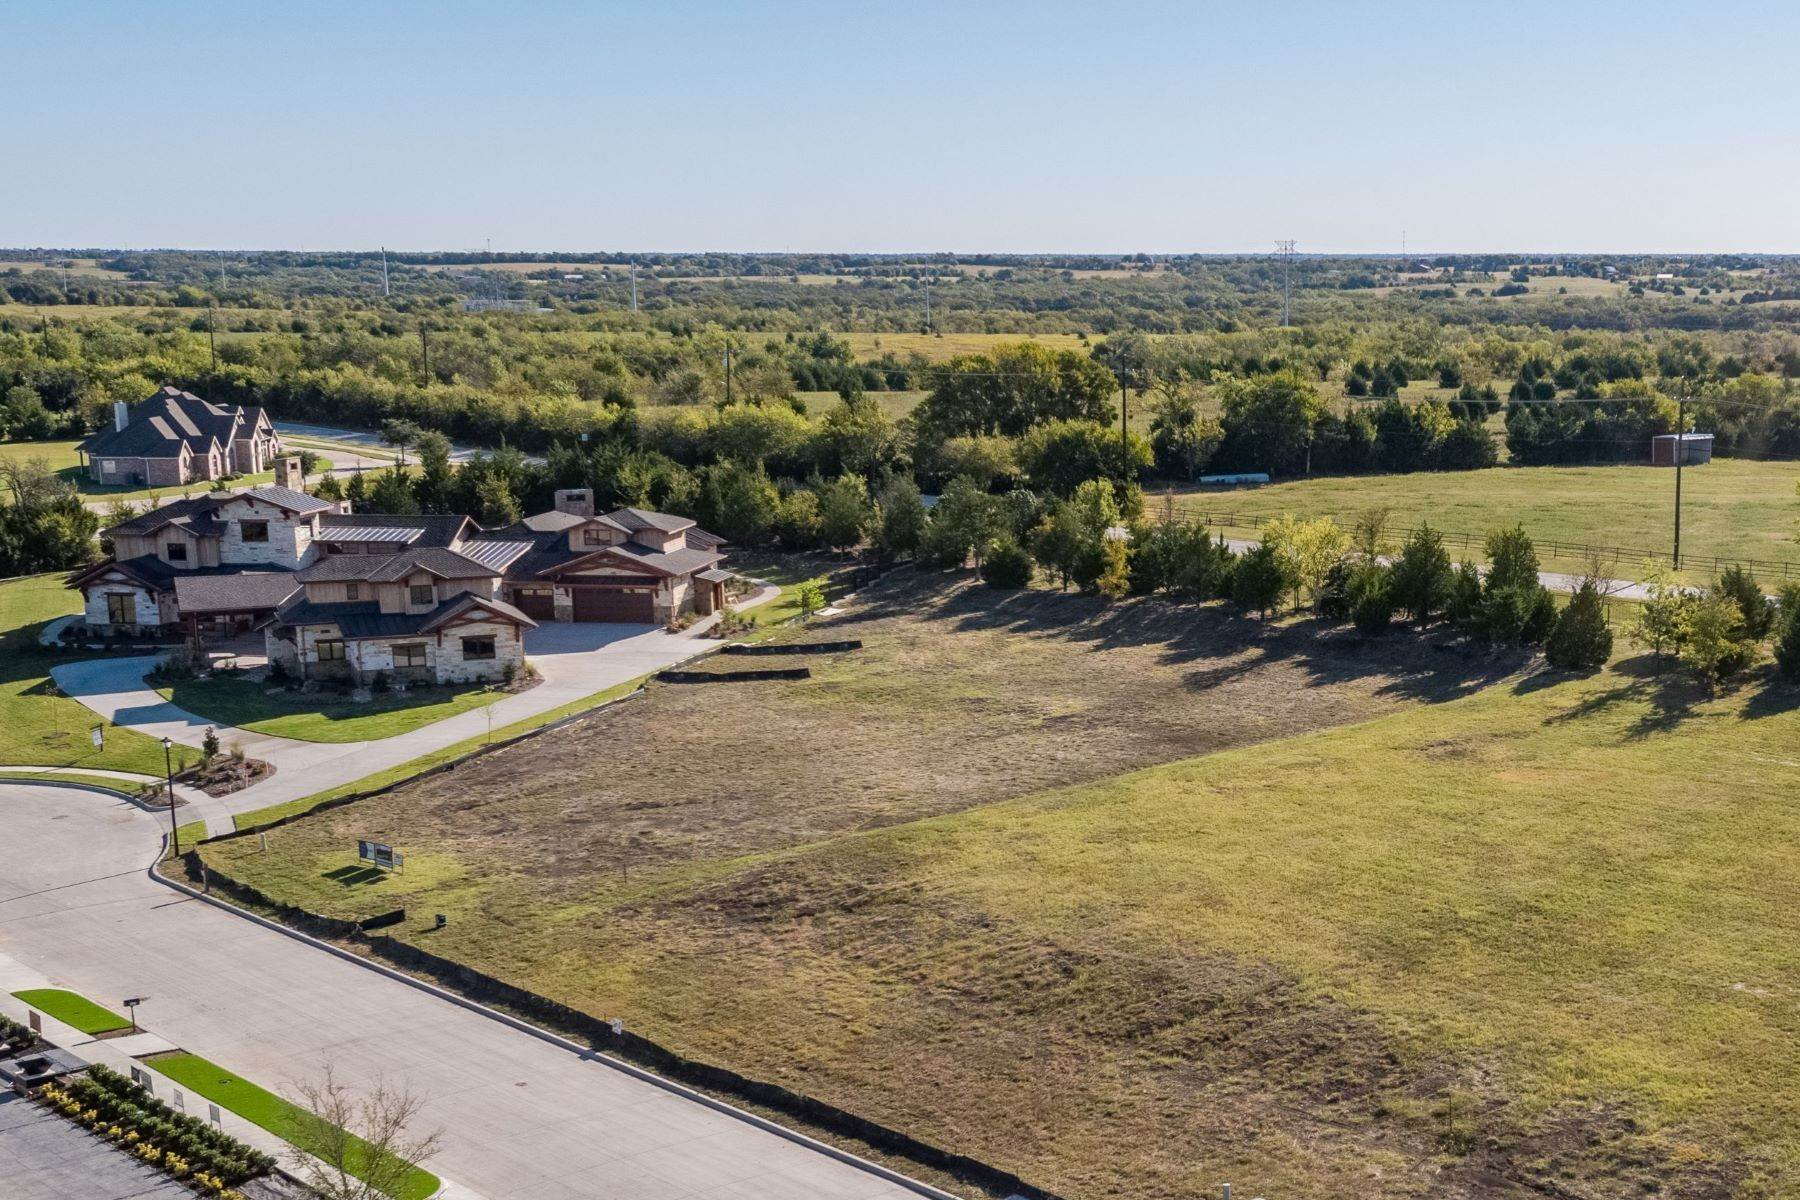 Land for Sale at 624 Rustic Ridge Drive, Heath, TX, 75032 624 Rustic Ridge Drive Heath, Texas 75032 United States